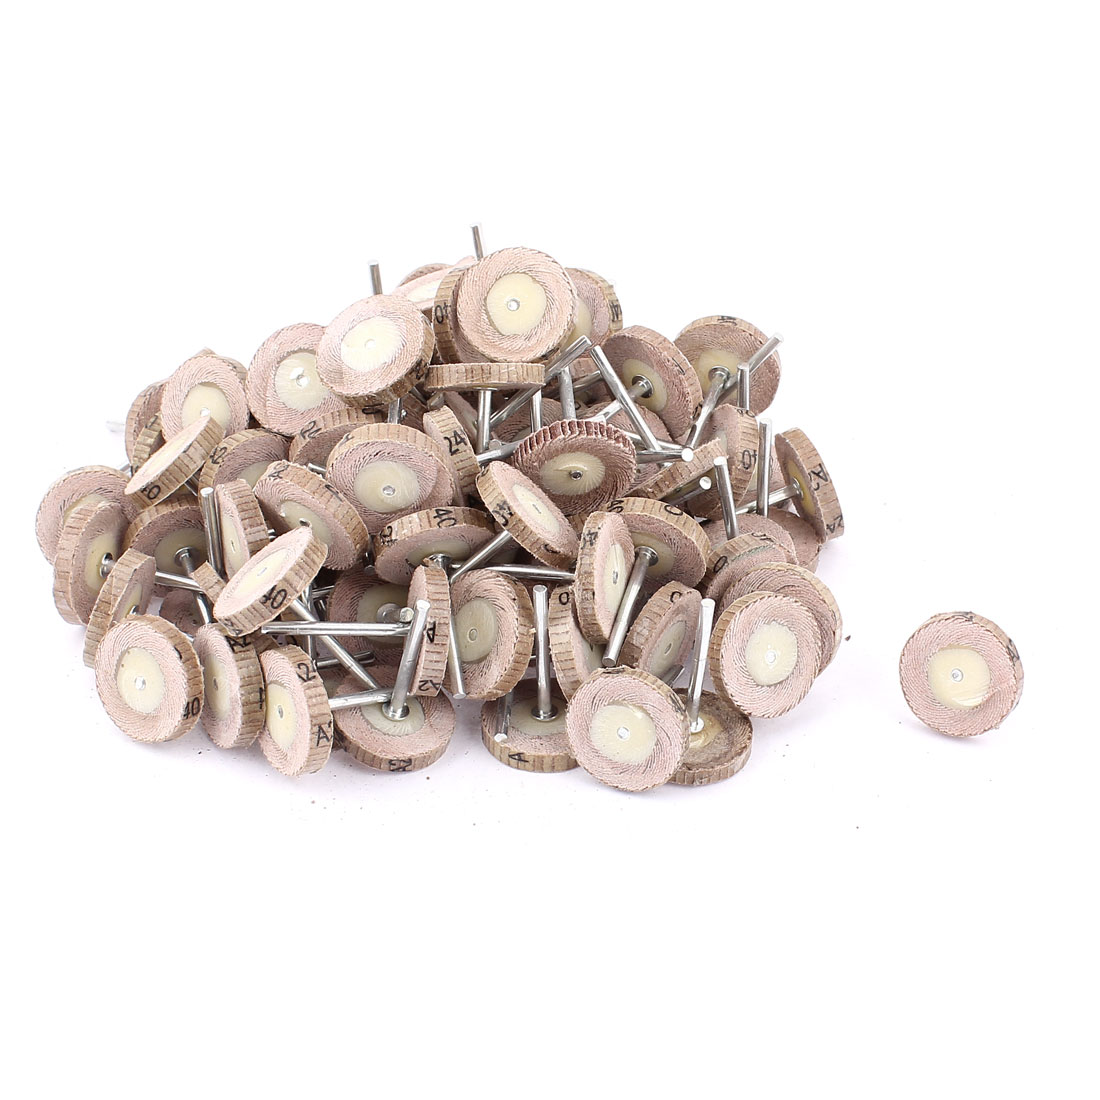 25mmx3mm T Shape Rotary Poishing Emery Cloth Wheel 100pcs w Handles